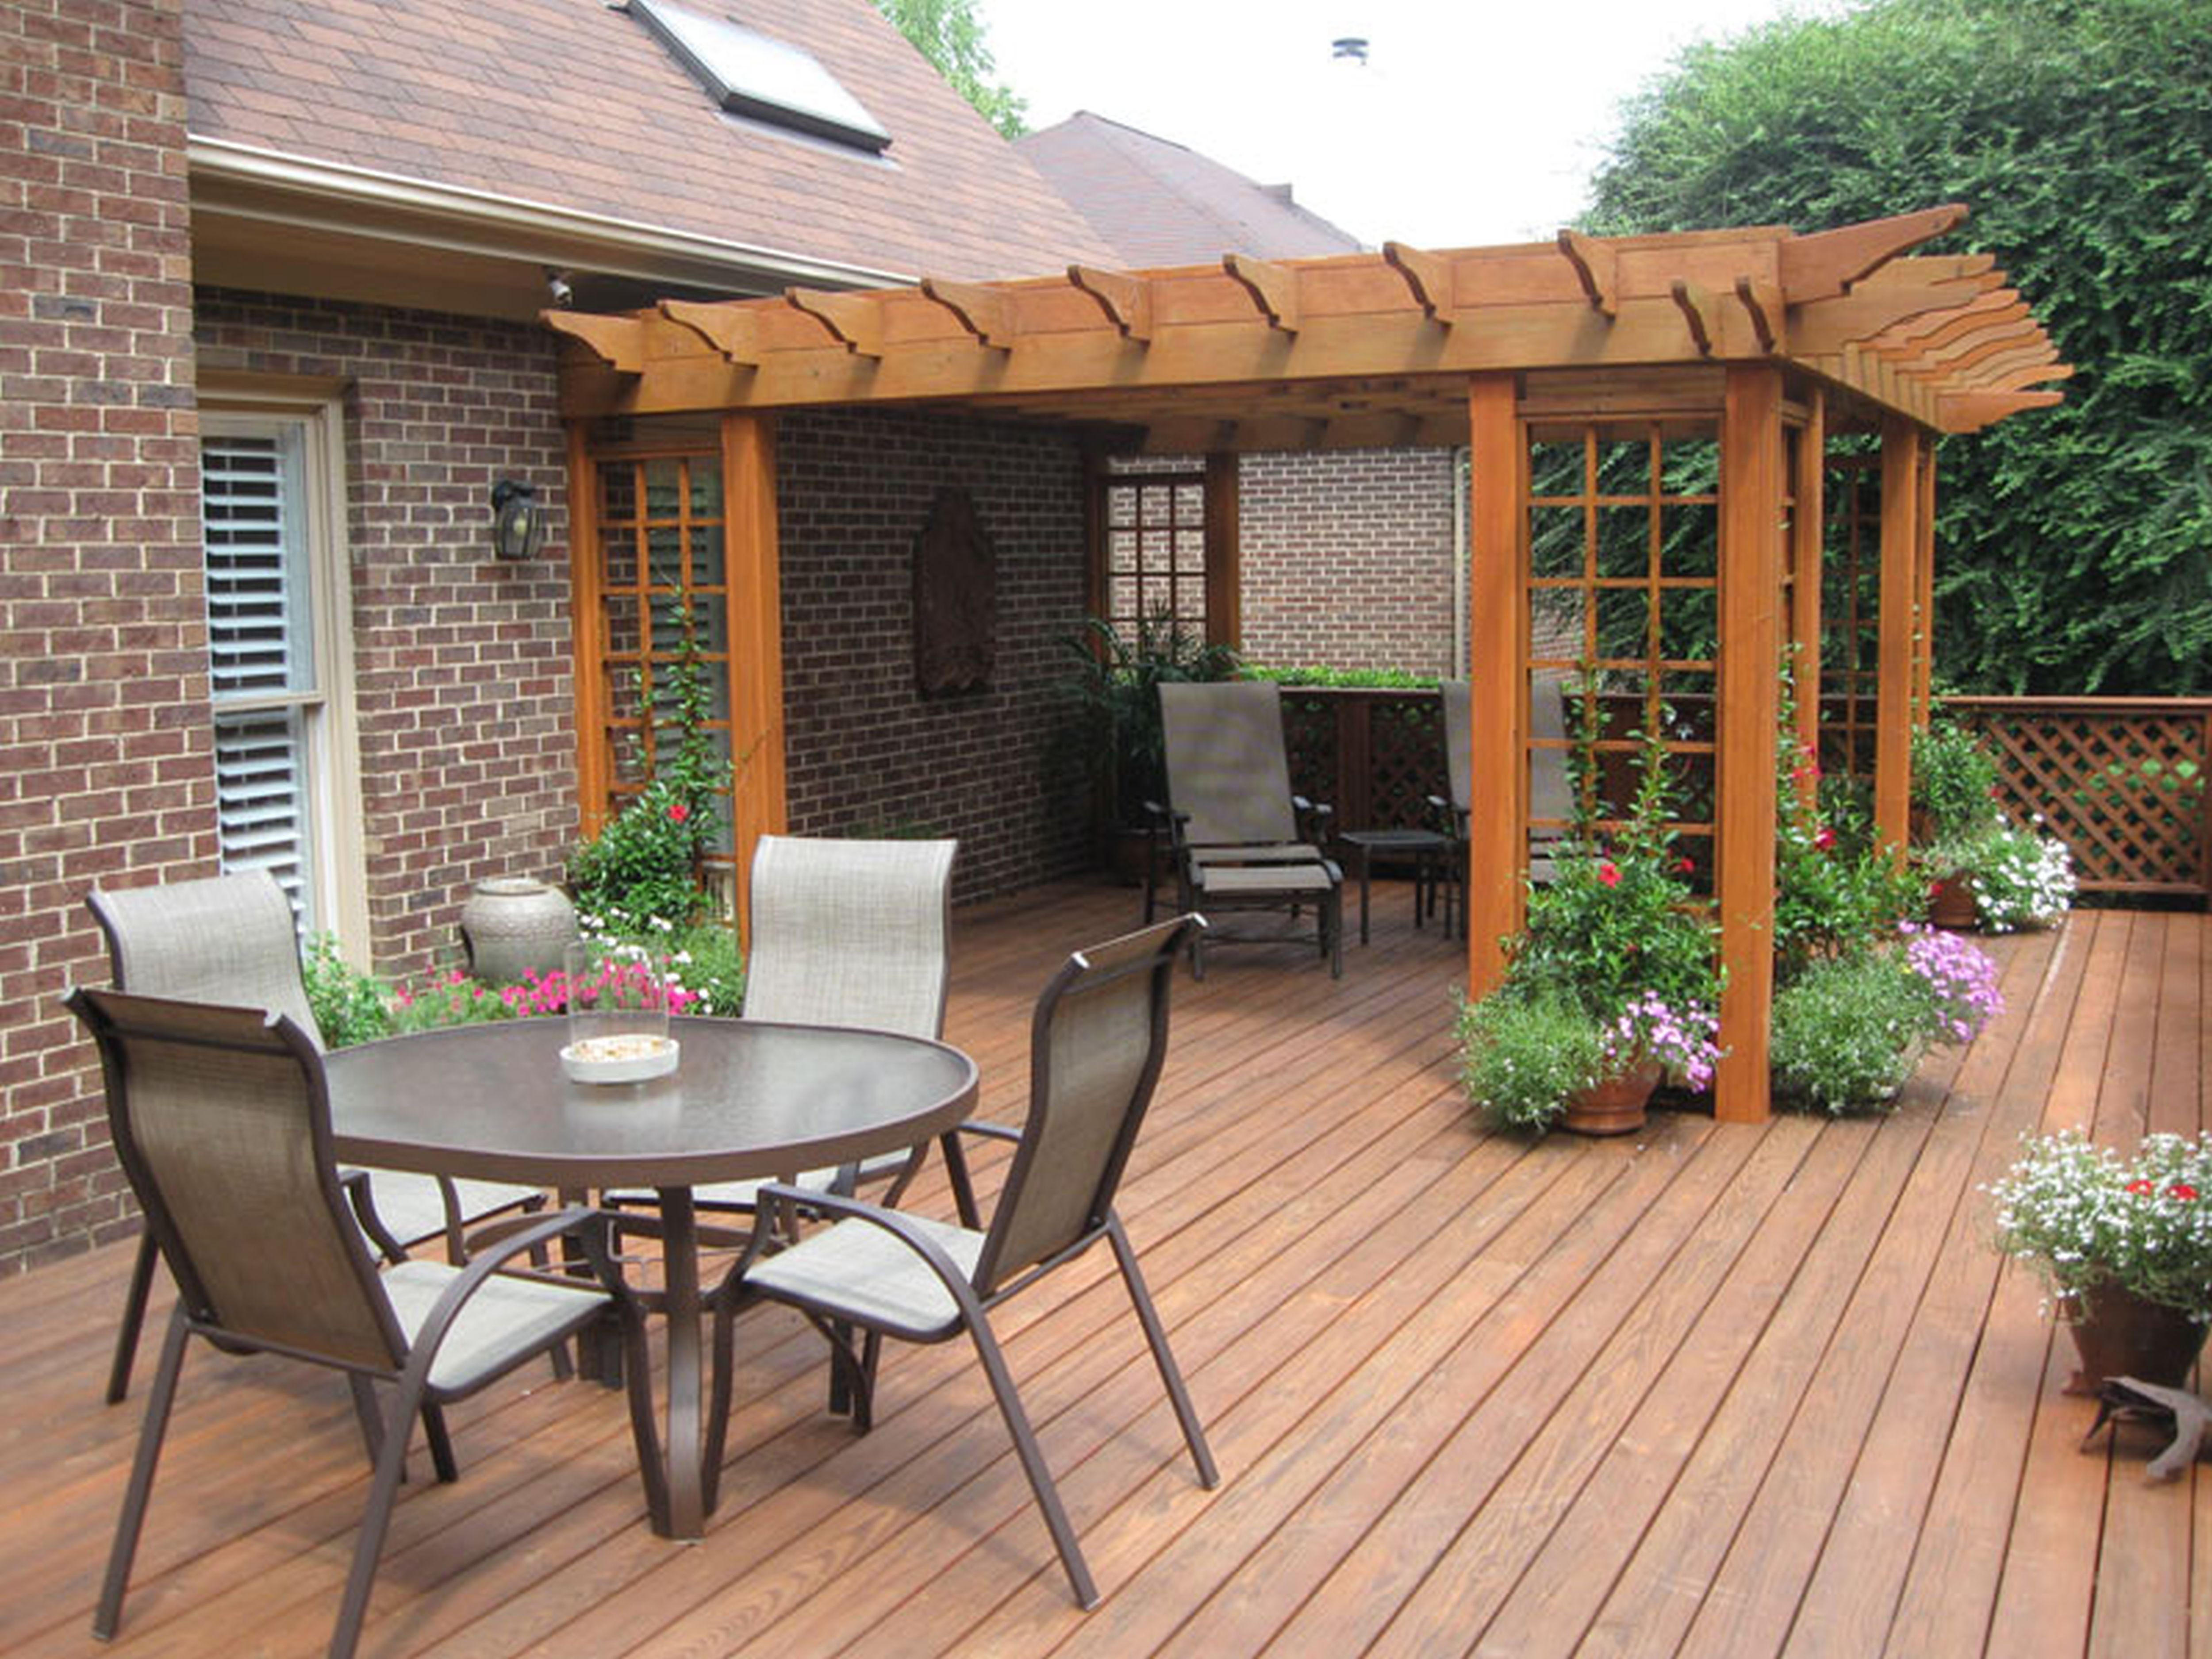 Backyard patio covers from usefulness to style homesfeed for Backyard decks